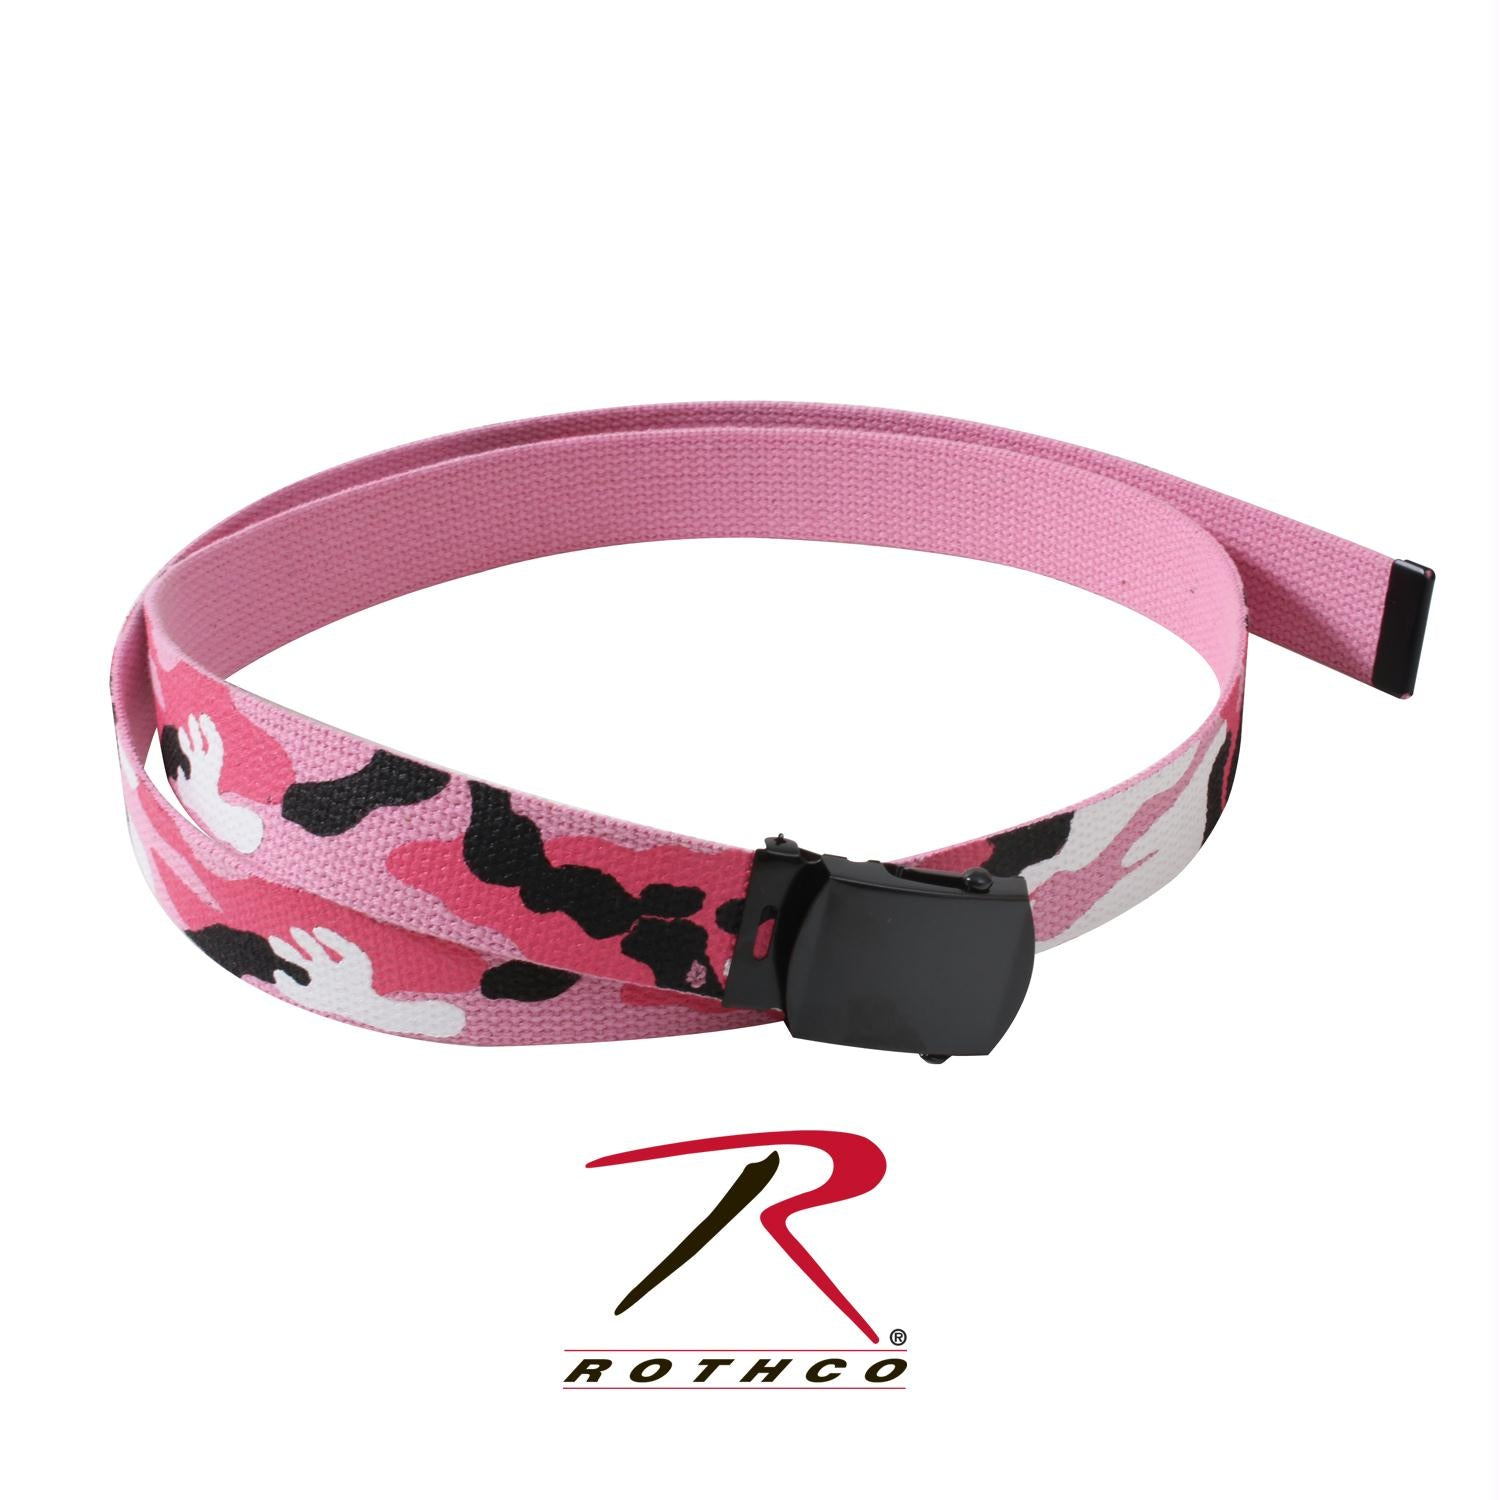 Rothco Camo Reversible Web Belt - Pink Camo / Pink / 54 Inches